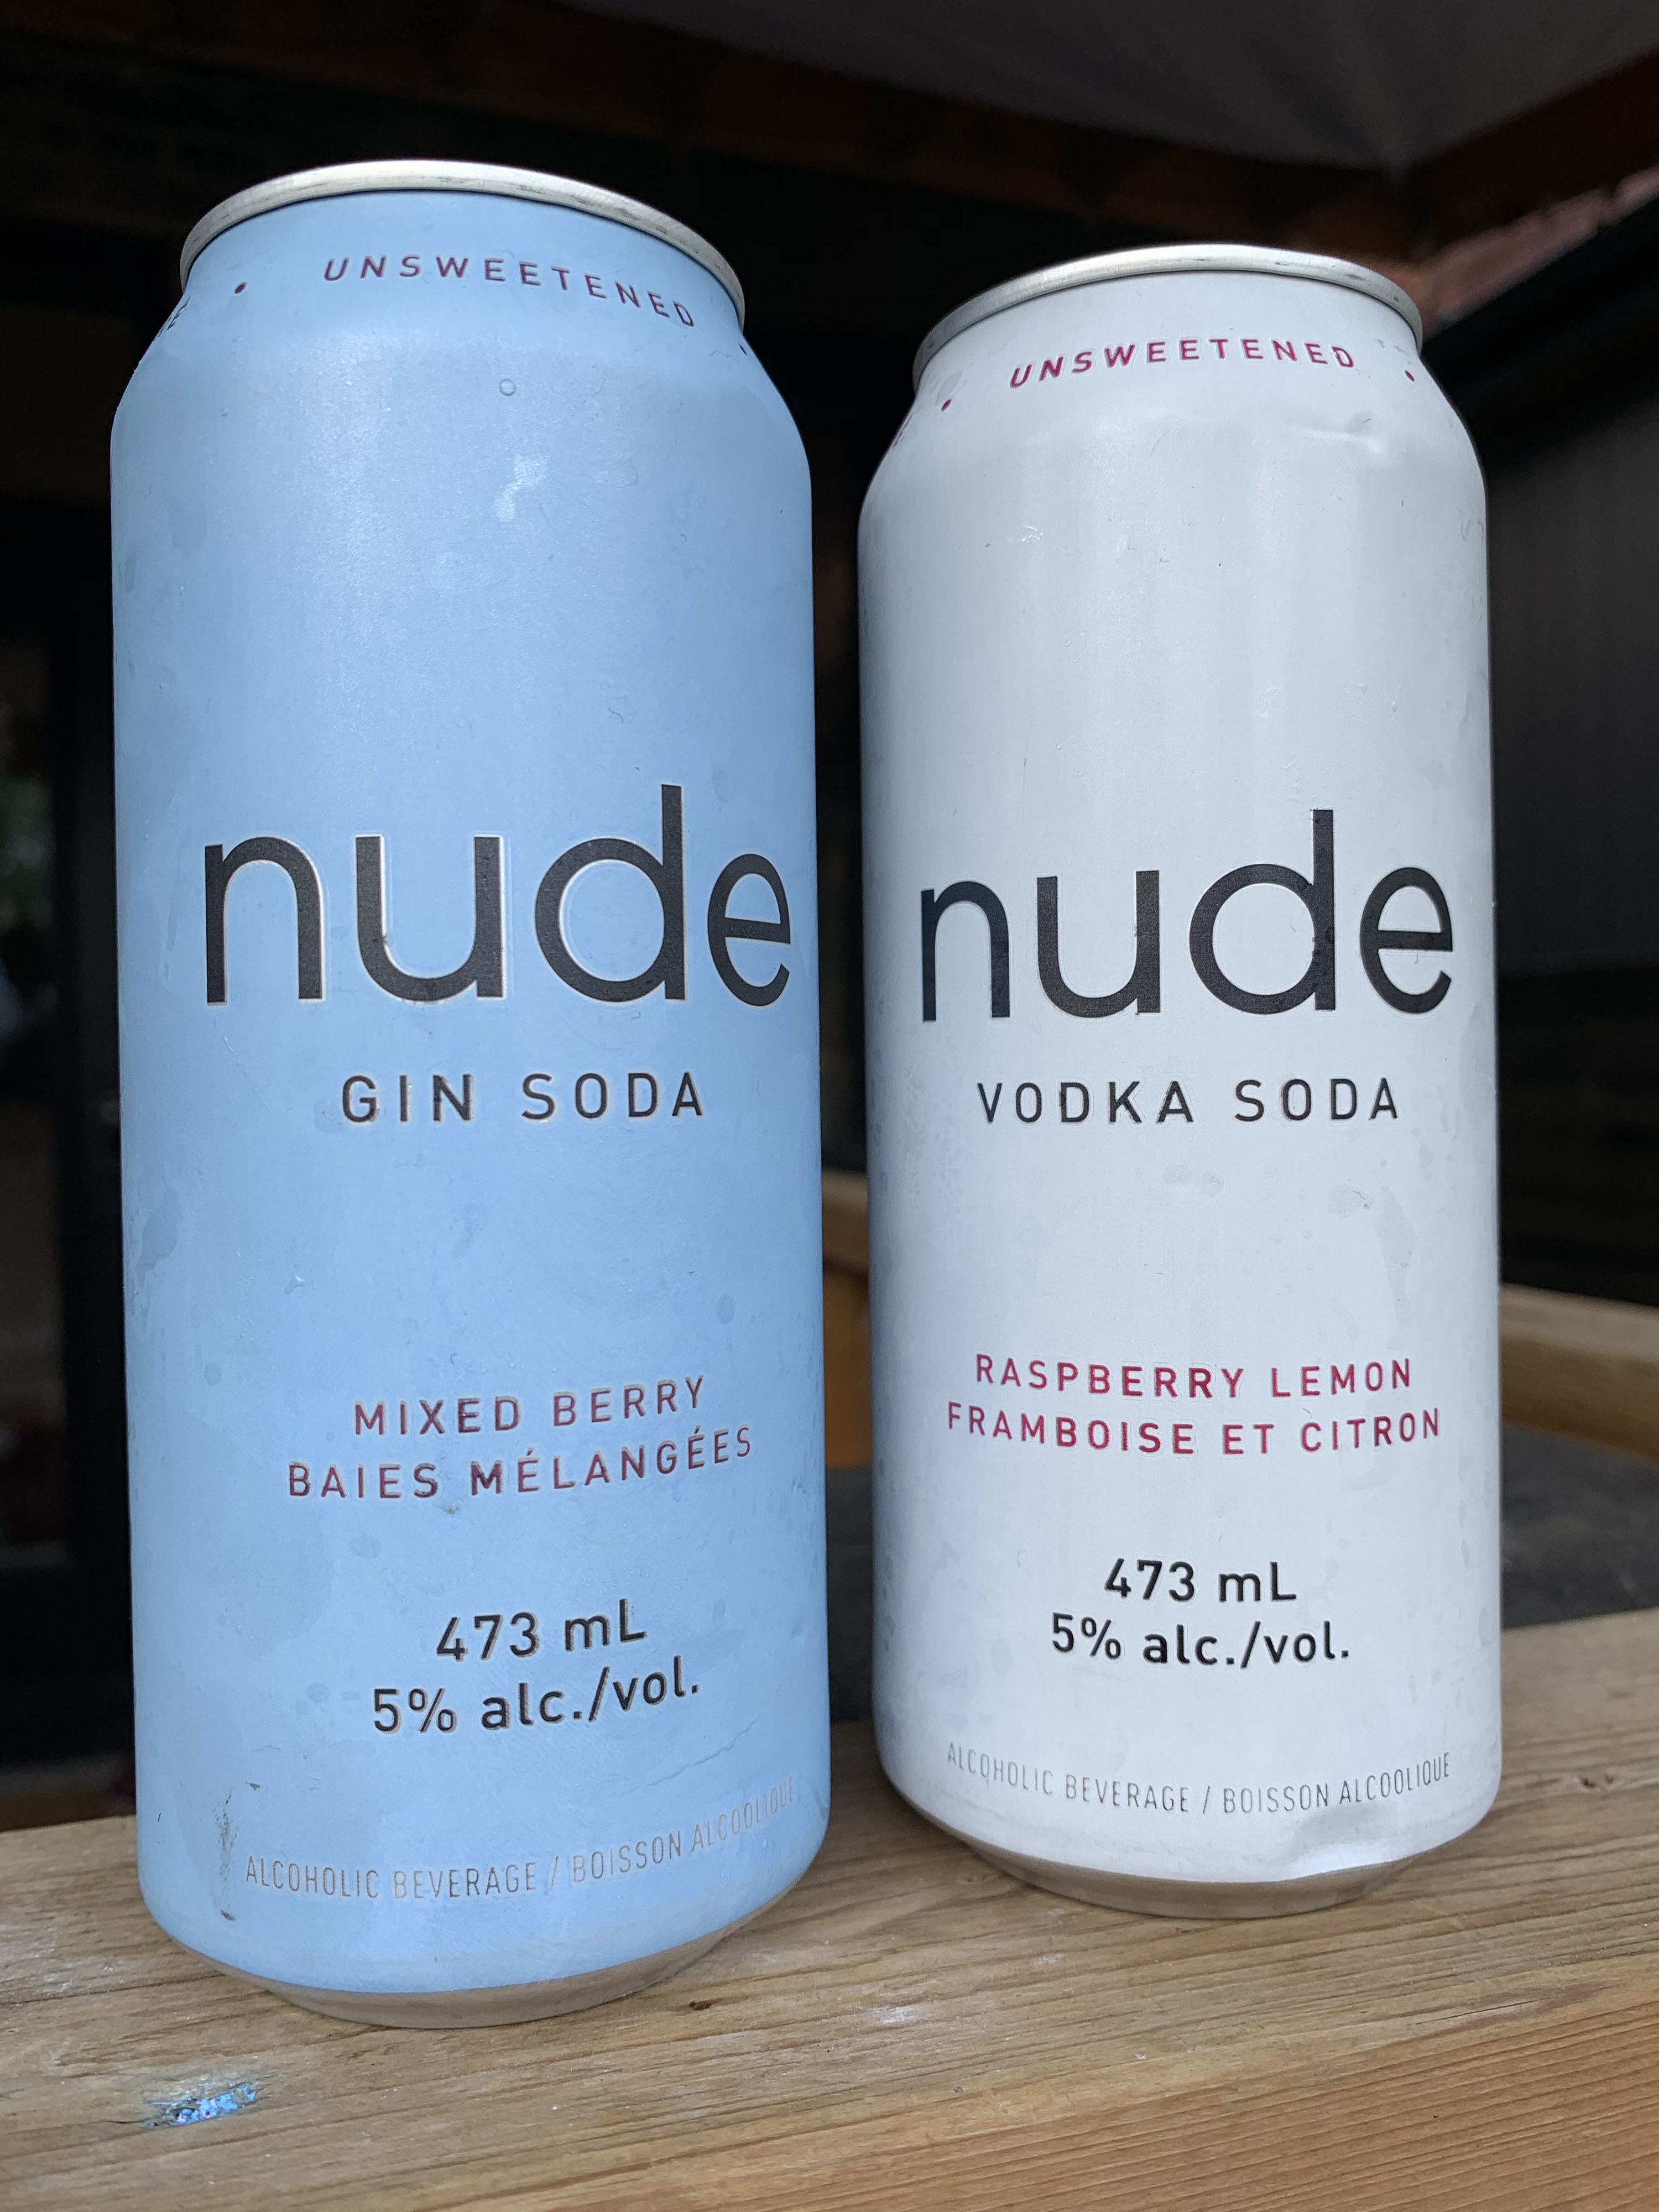 Two cans of Nude – one is blue and is a mixed berry gin soda, while the other is white and is a vodka soda with raspberry lemon.